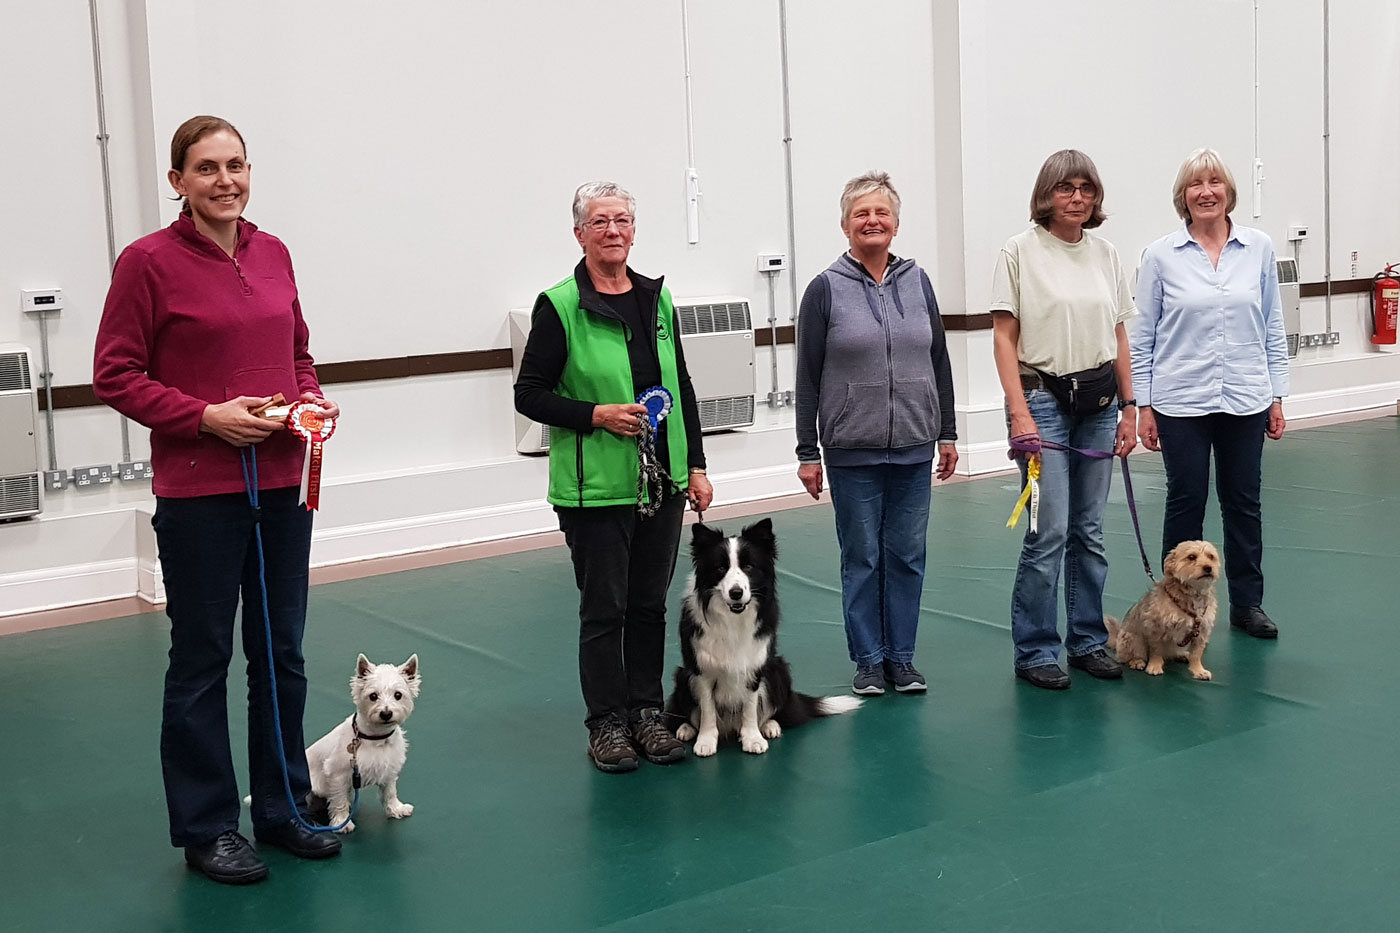 Line up for Class 4 for our yearly obedience test